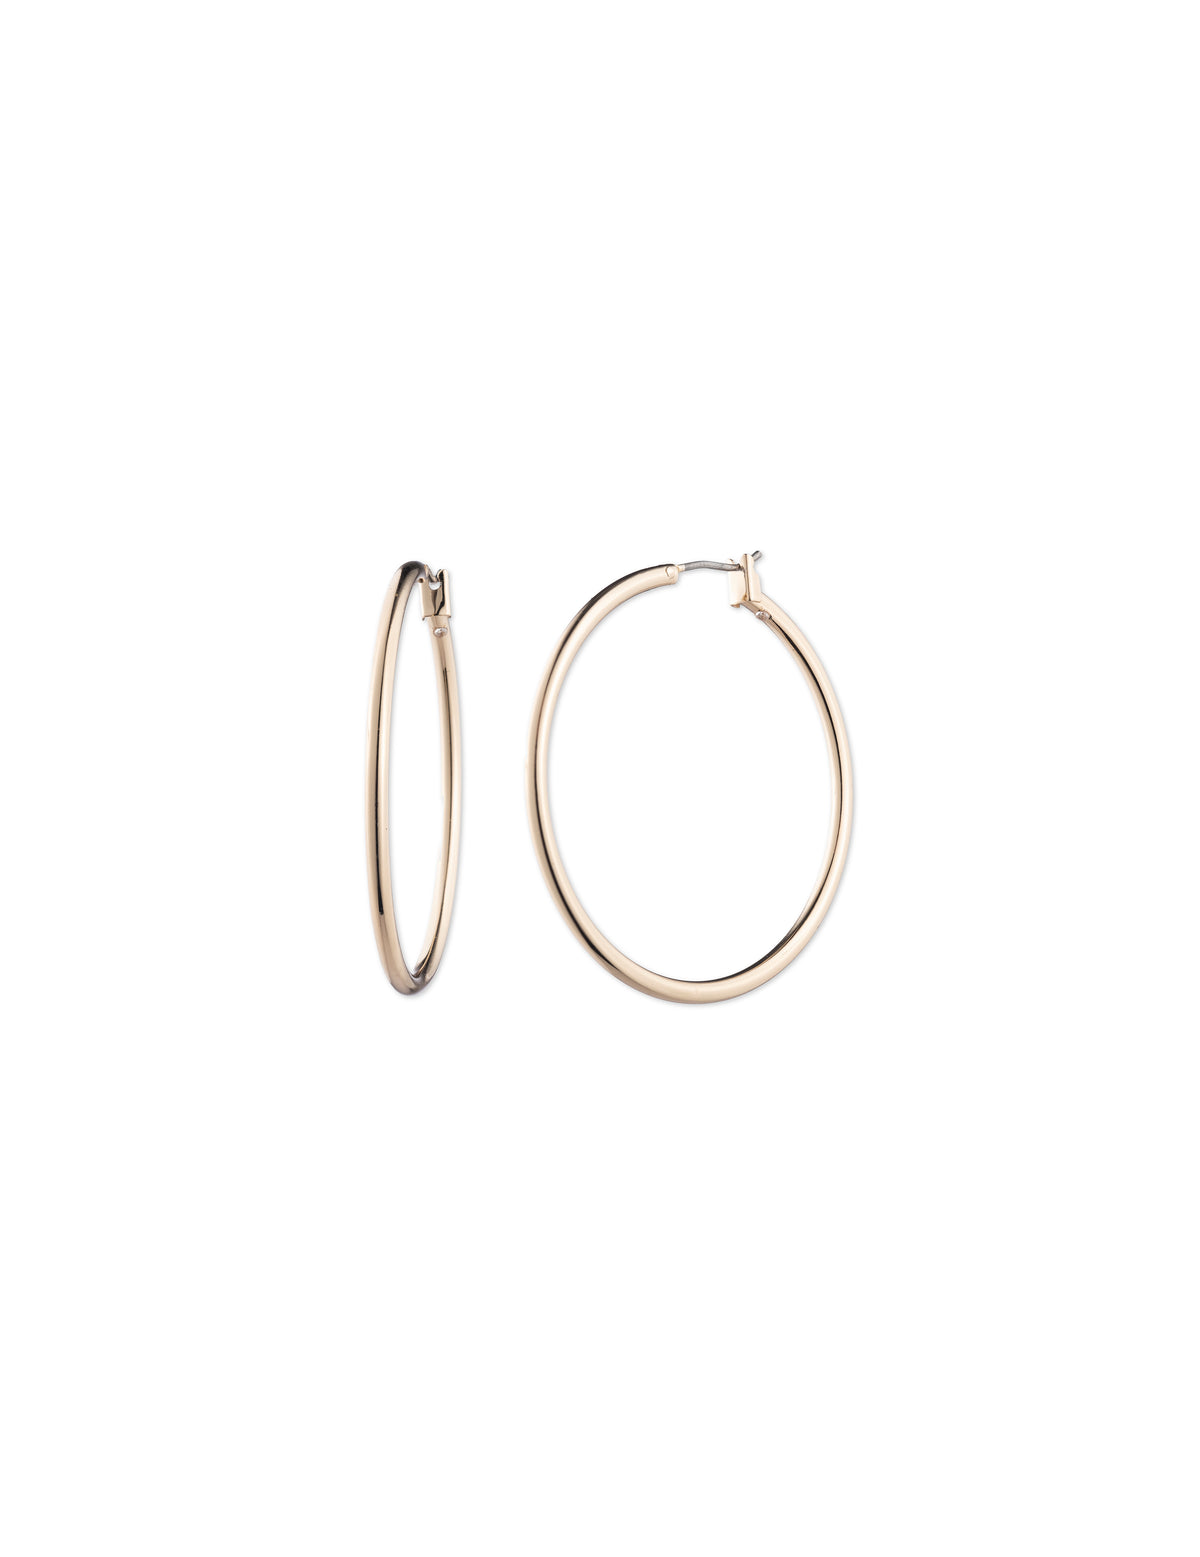 Large Gold-Tone Hoop Earrings